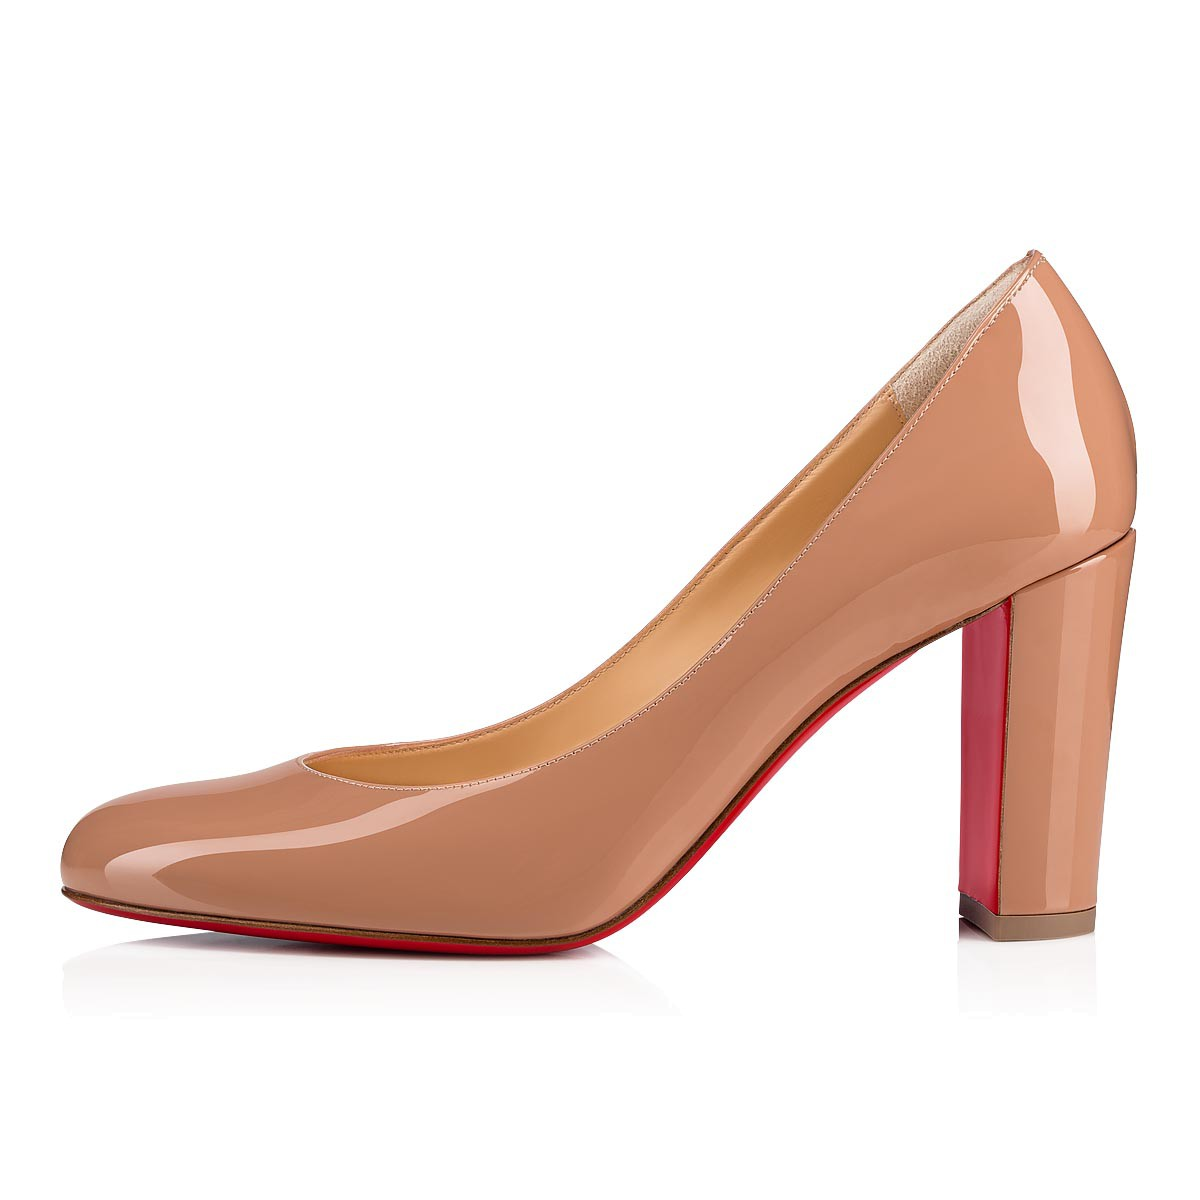 official shop best wholesaler online store Lady Gena 85 Nude Patent calfskin - Women Shoes - Christian Louboutin